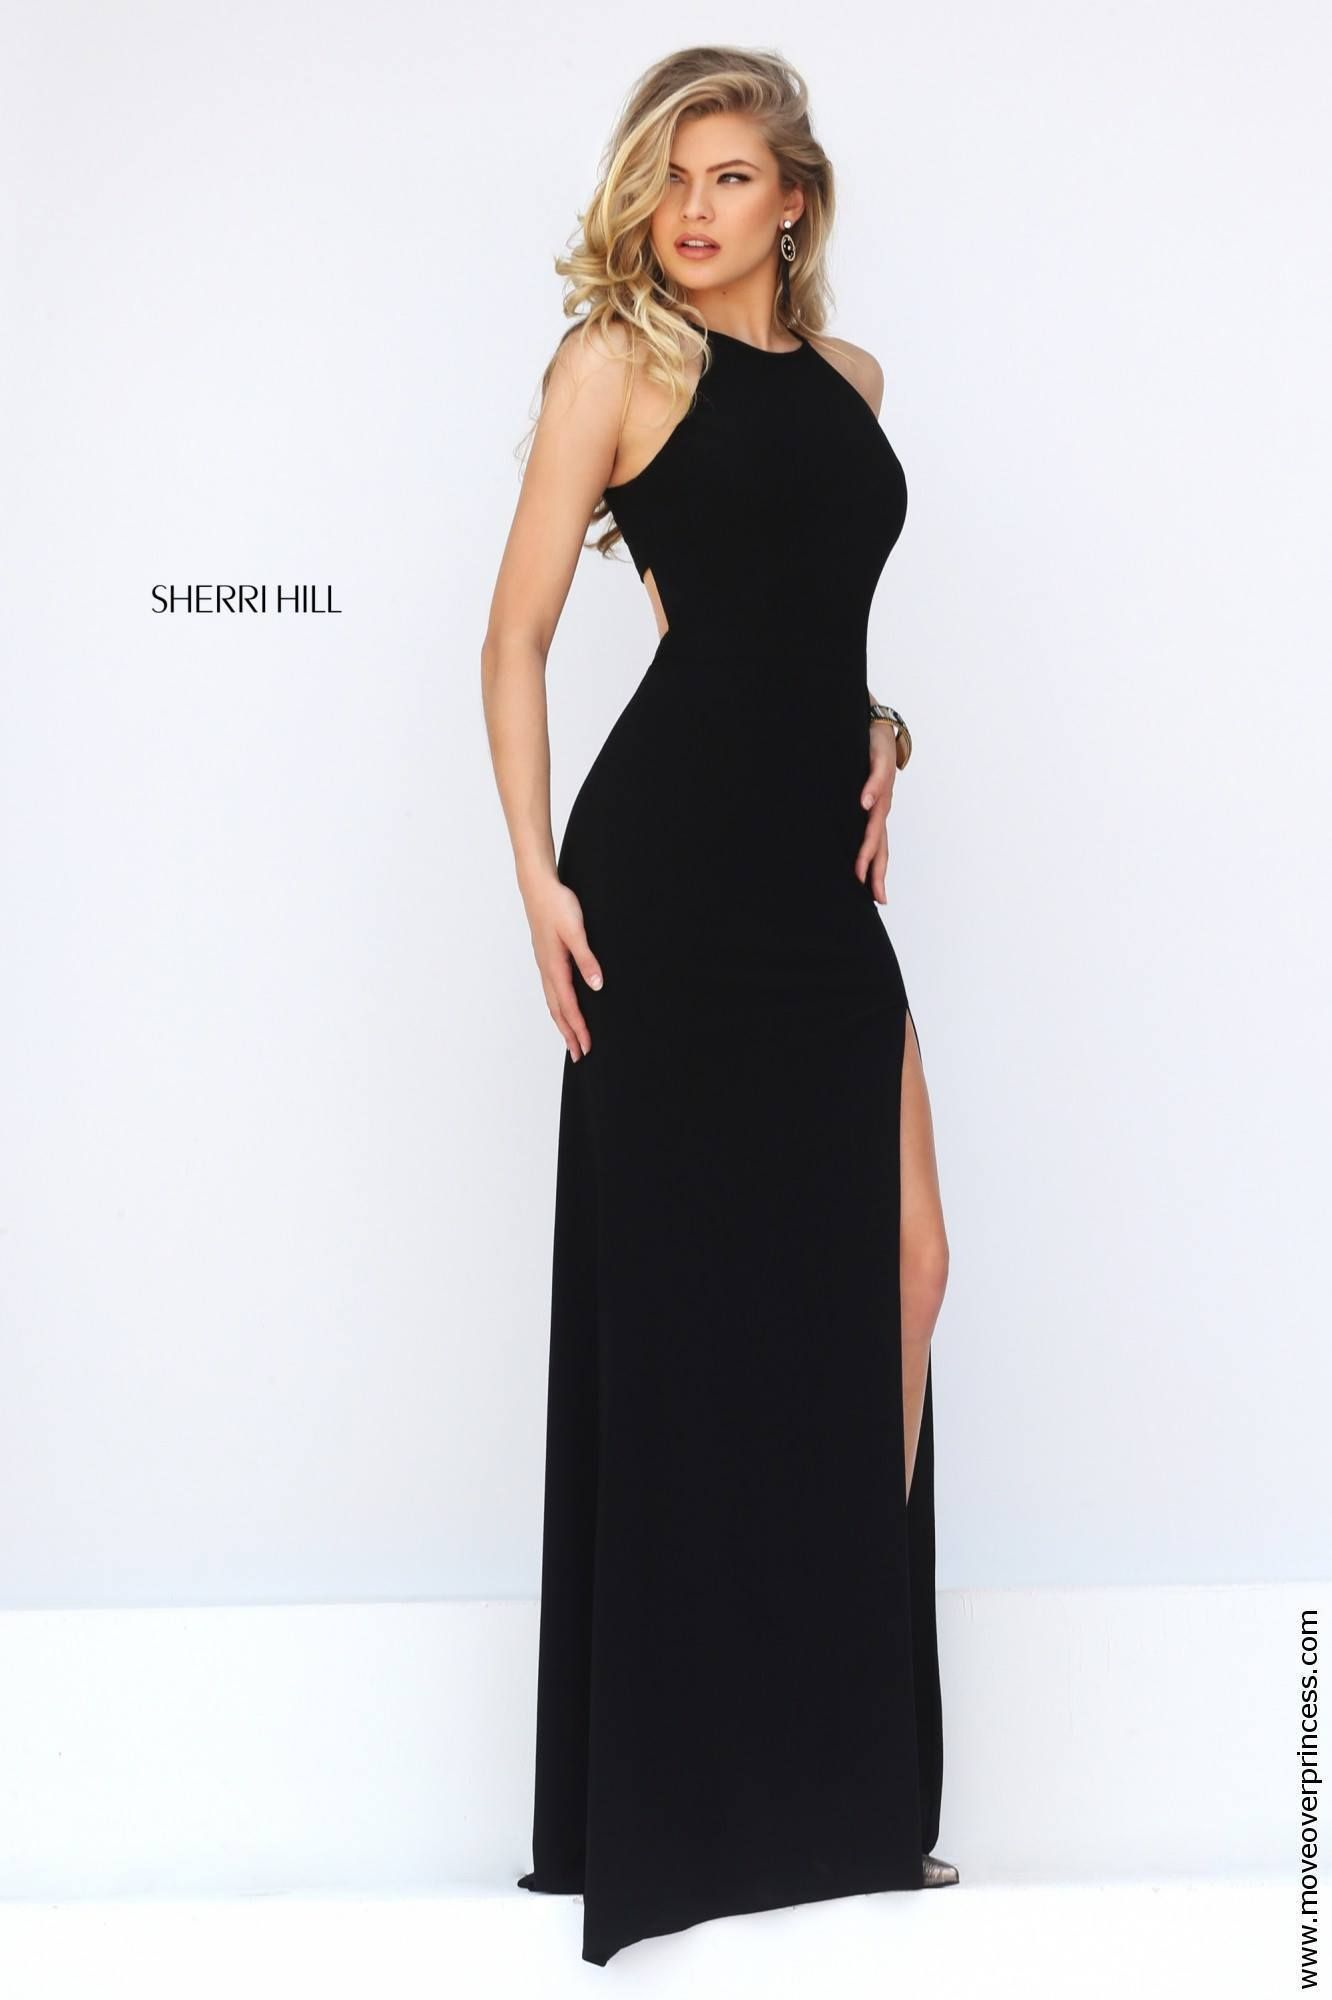 Sherri hill prom pinterest prom prom boutiques and prom